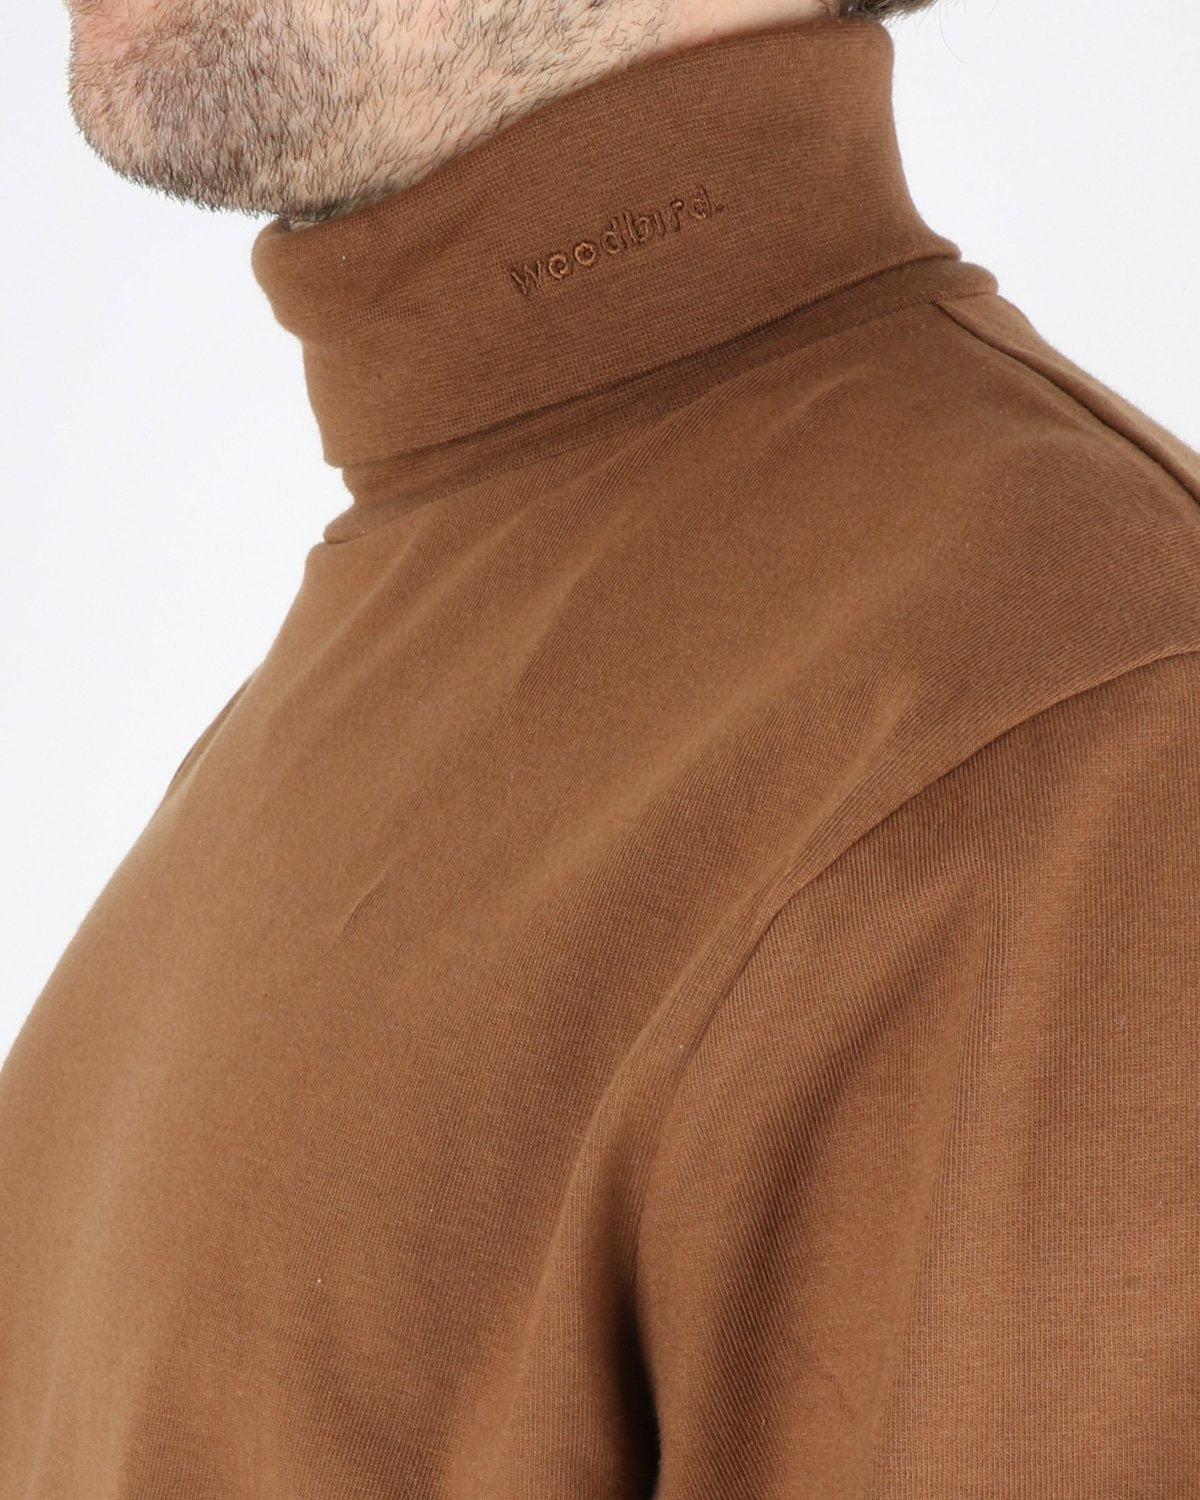 woodbird_amin turtleneck_brownie_2_4